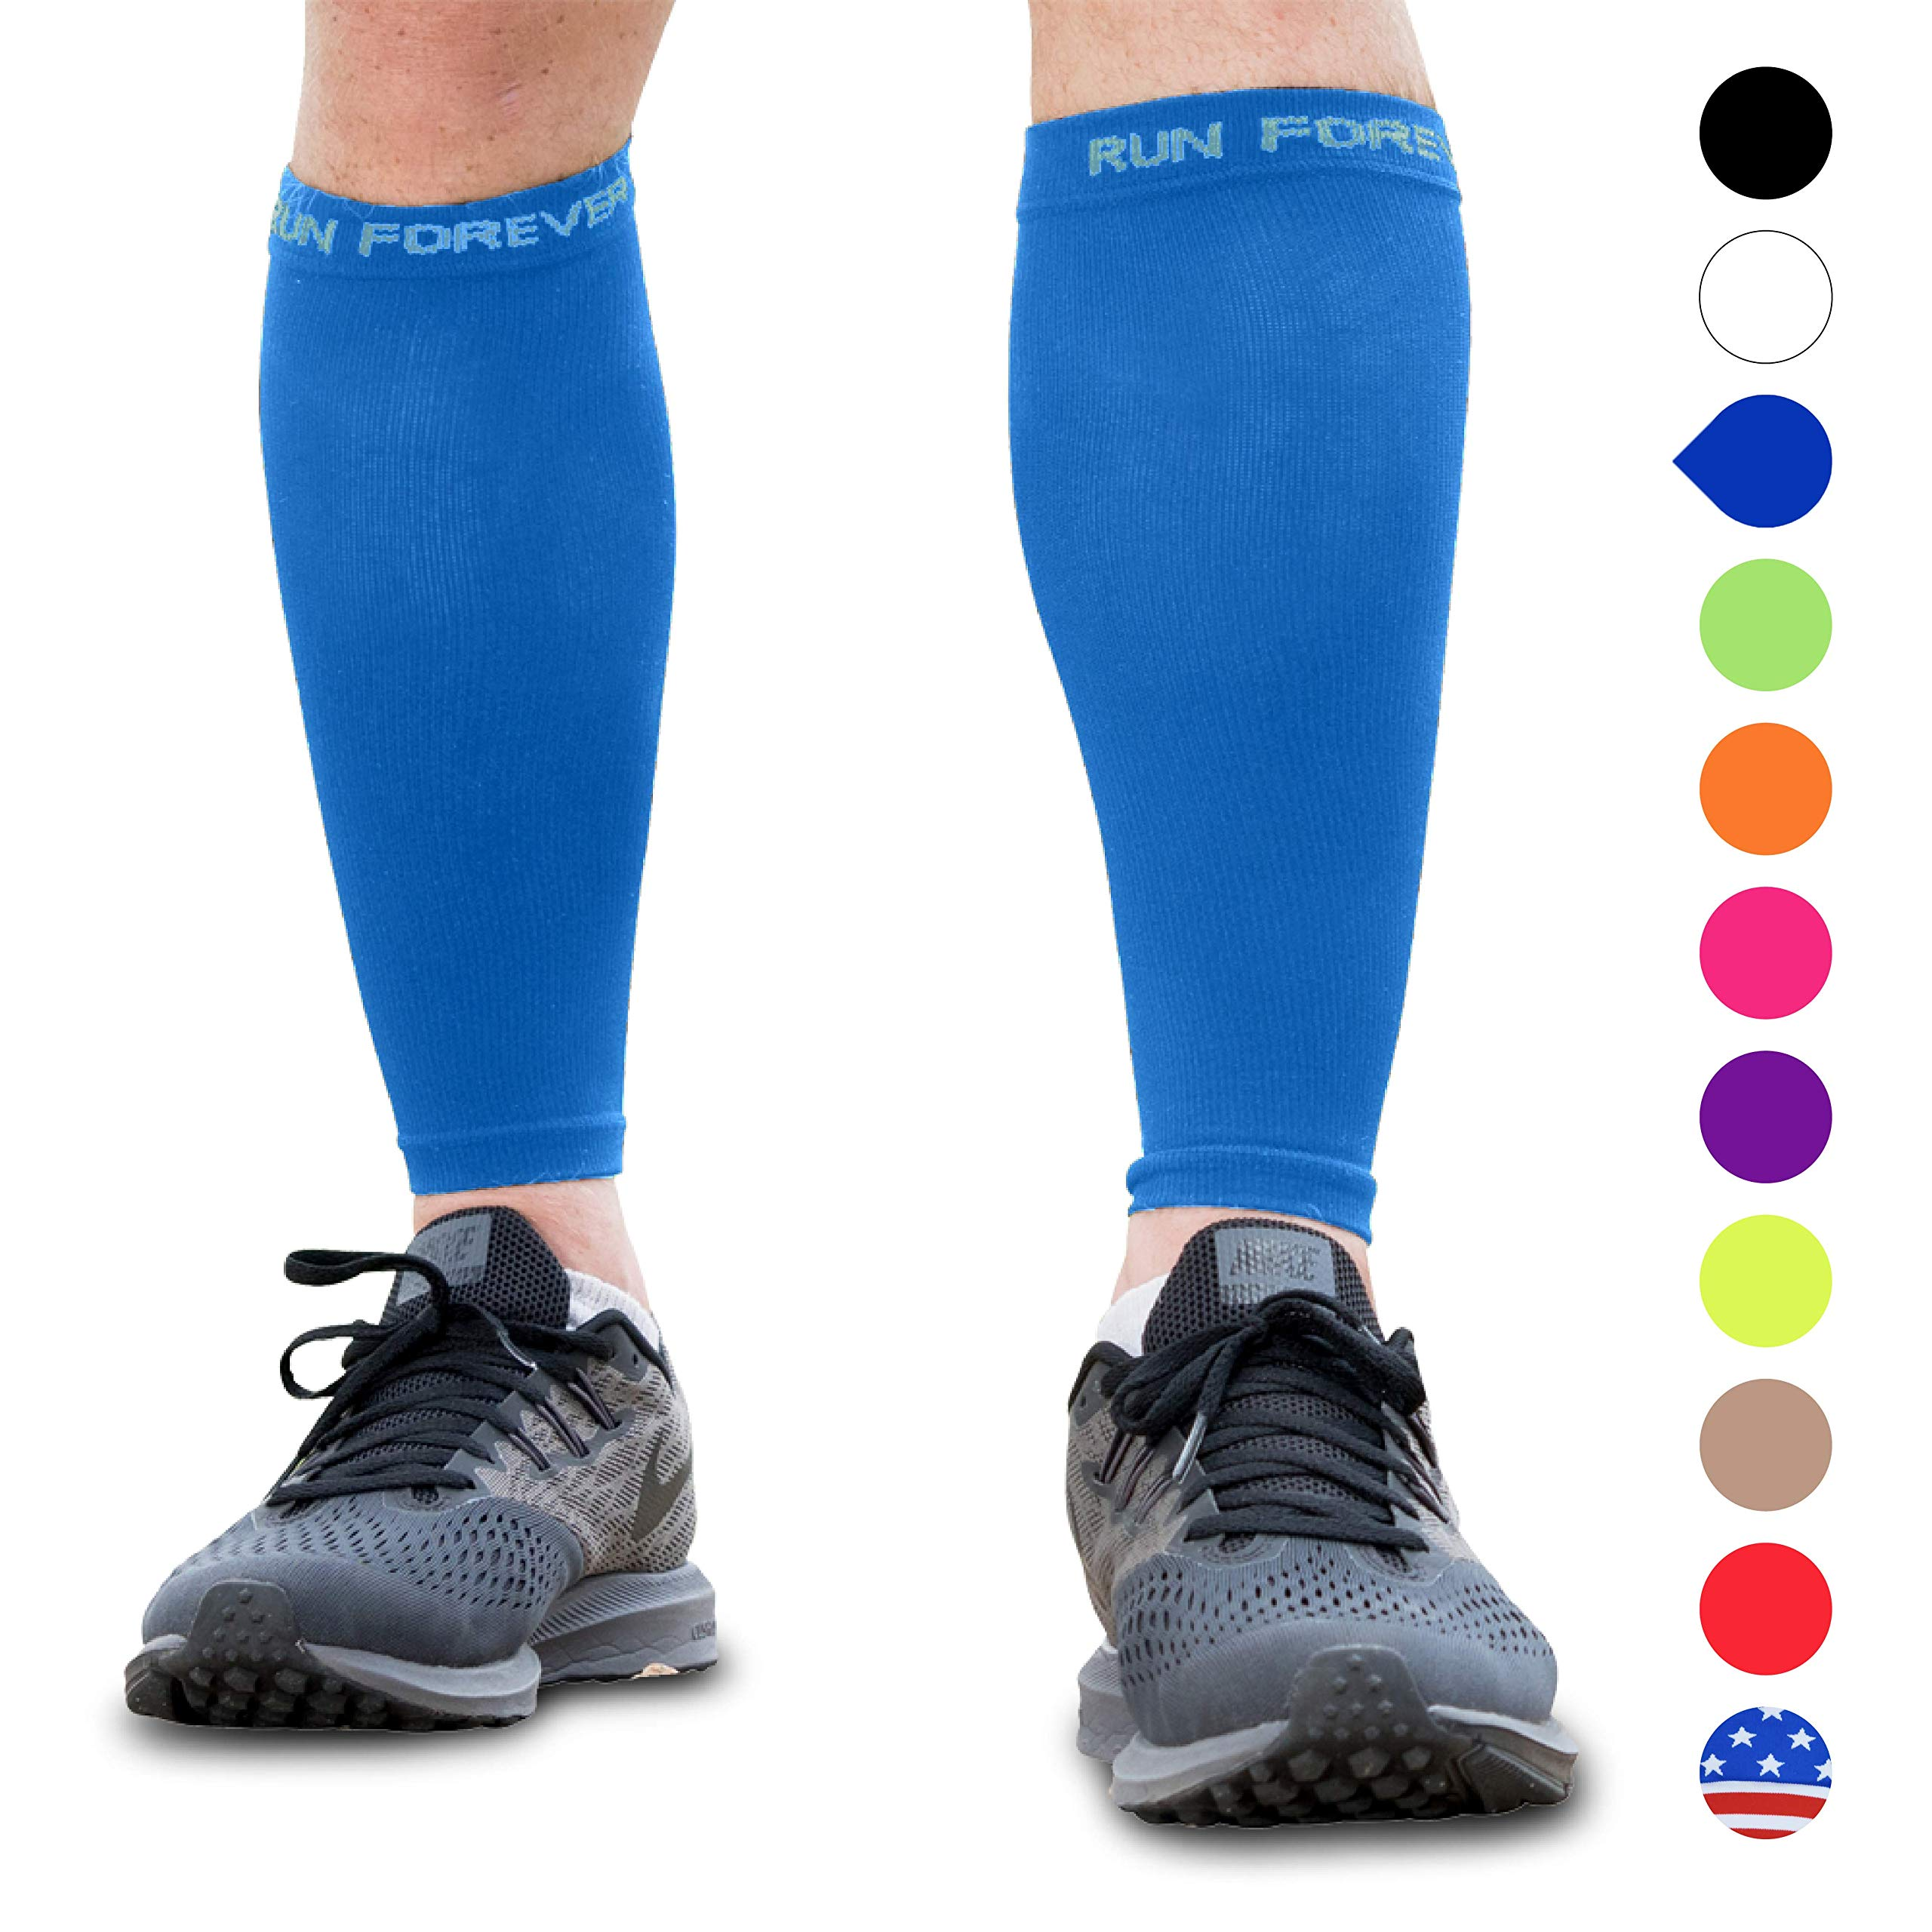 Calf Compression Sleeves - Leg Compression Socks for Runners, Shin Splint, Varicose Vein & Calf Pain Relief - Calf Guard Great for Running, Cycling, Maternity, Travel, Nurses (Blue, Large) by Run Forever Sports